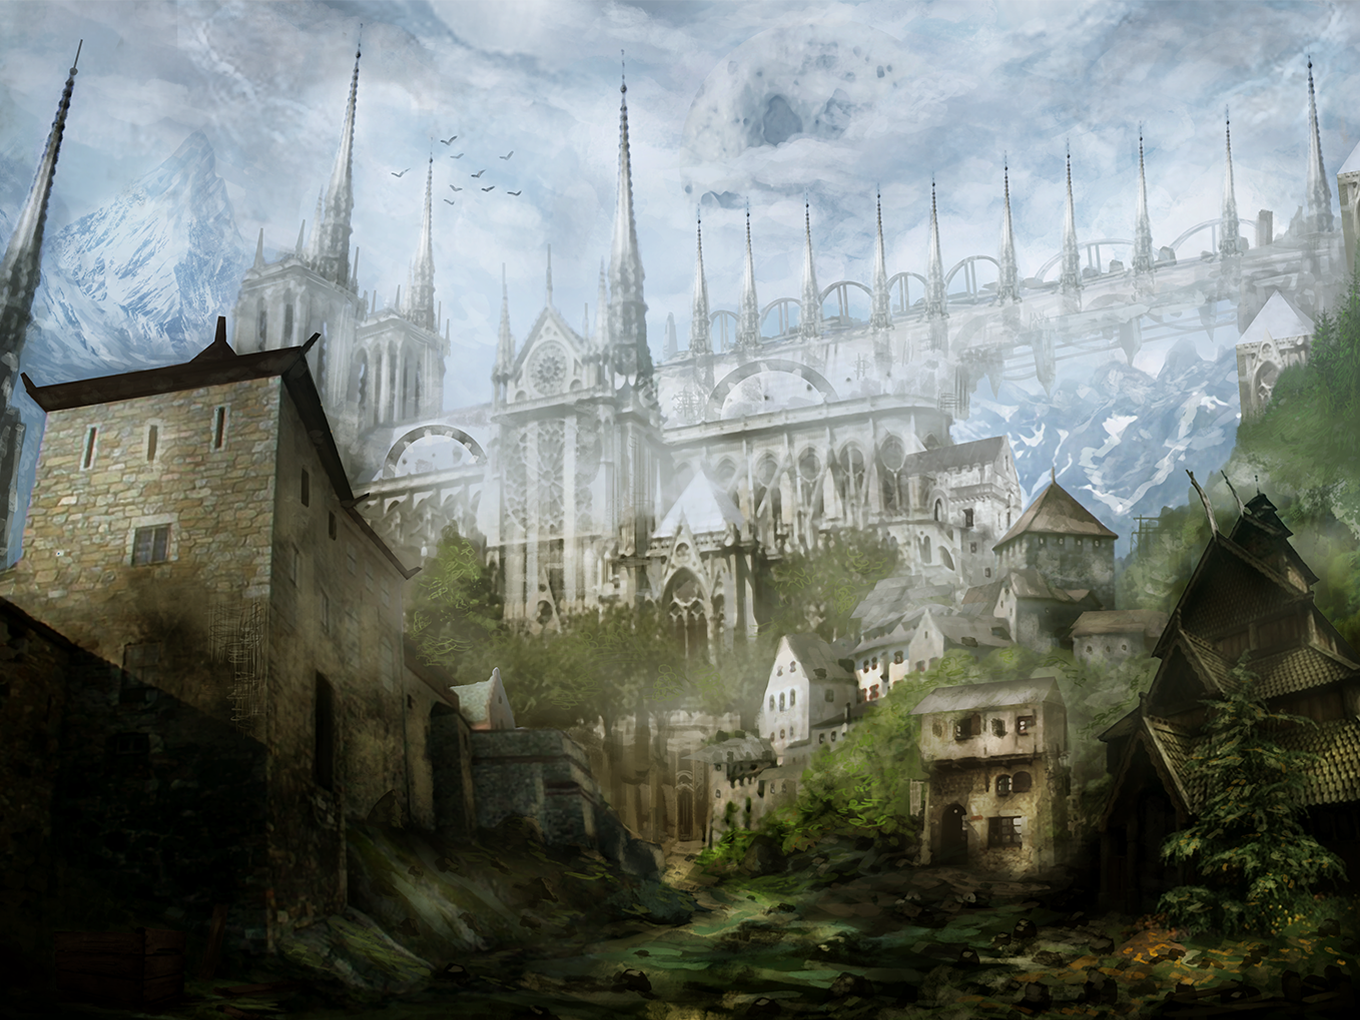 a_medieval_town_by_narandel-d6f8lks.png